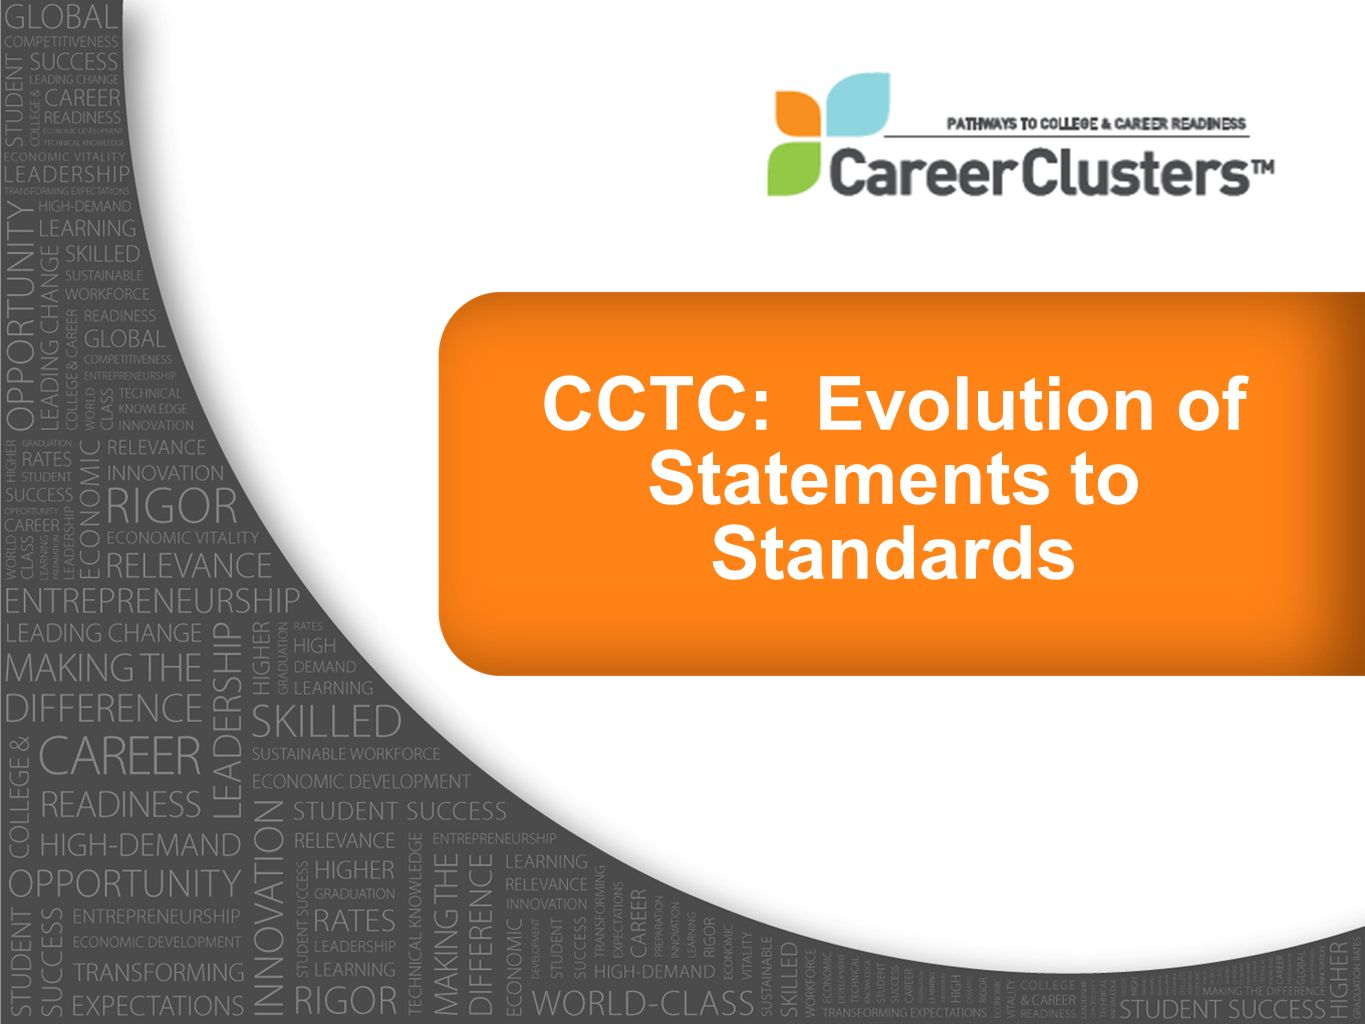 CCTC: Evolution of Statements to Standards